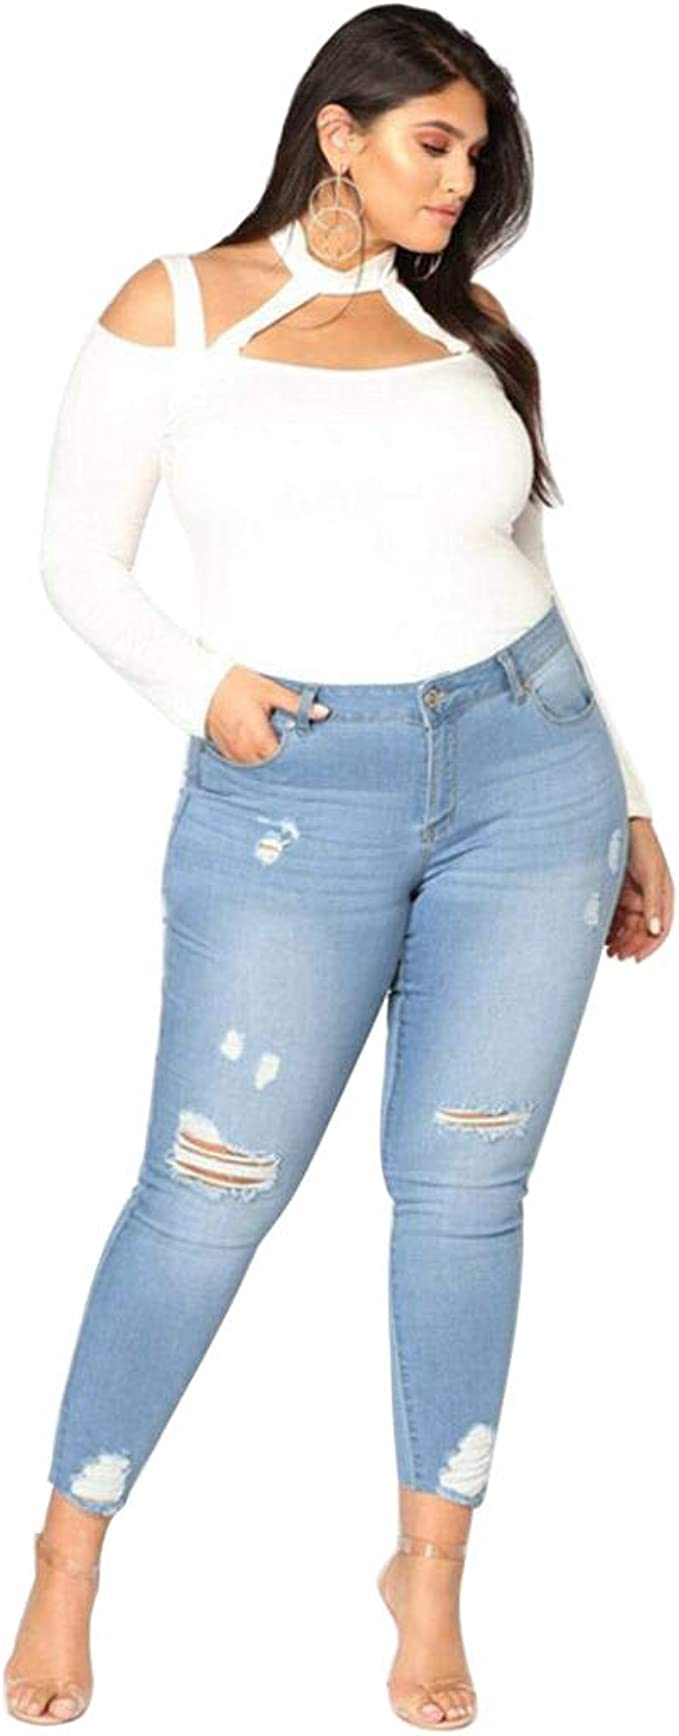 Bestwo Women/'s Distressed Jeans High Waist Ripped Pencil Skinny Legging Jeans